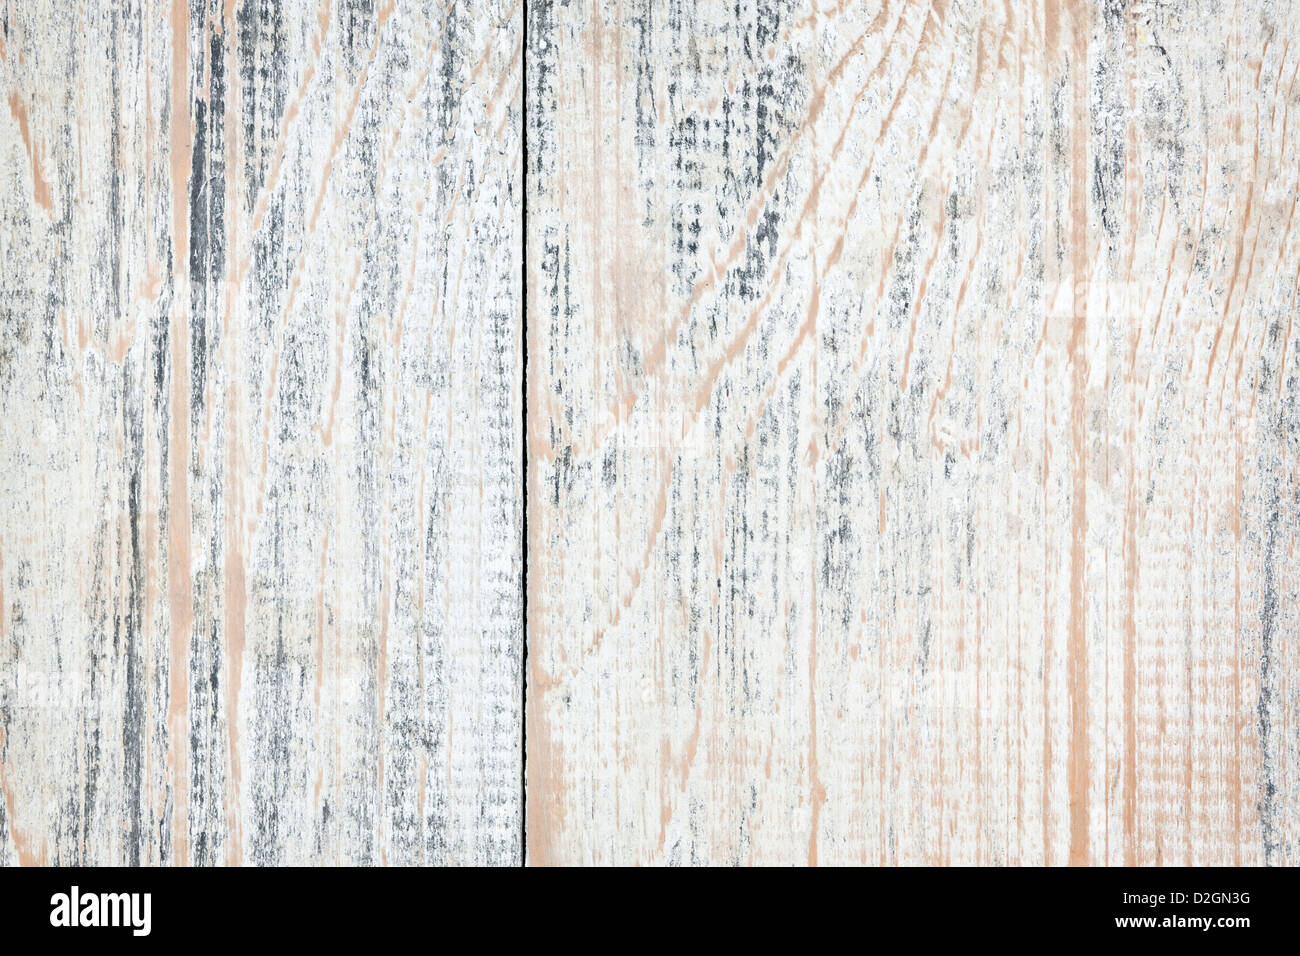 Background of distressed old painted wood texture - Stock Image